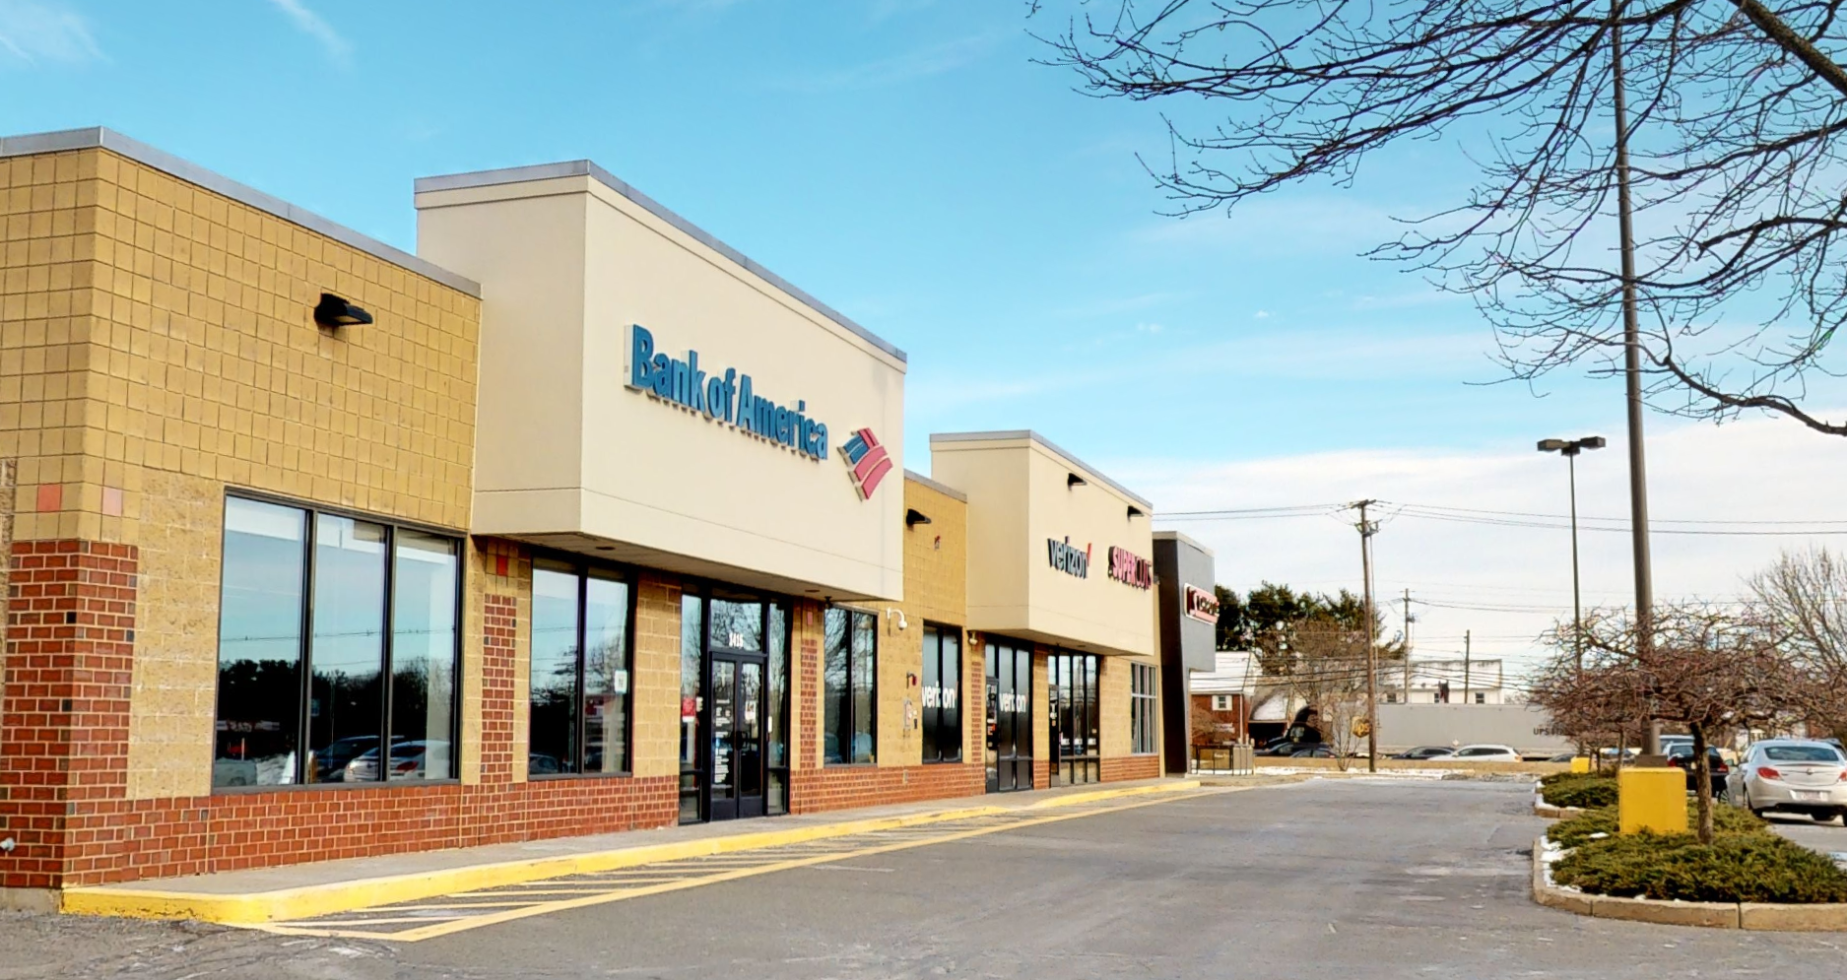 Bank of America financial center with walk-up ATM   1415 Providence Hwy, Norwood, MA 02062